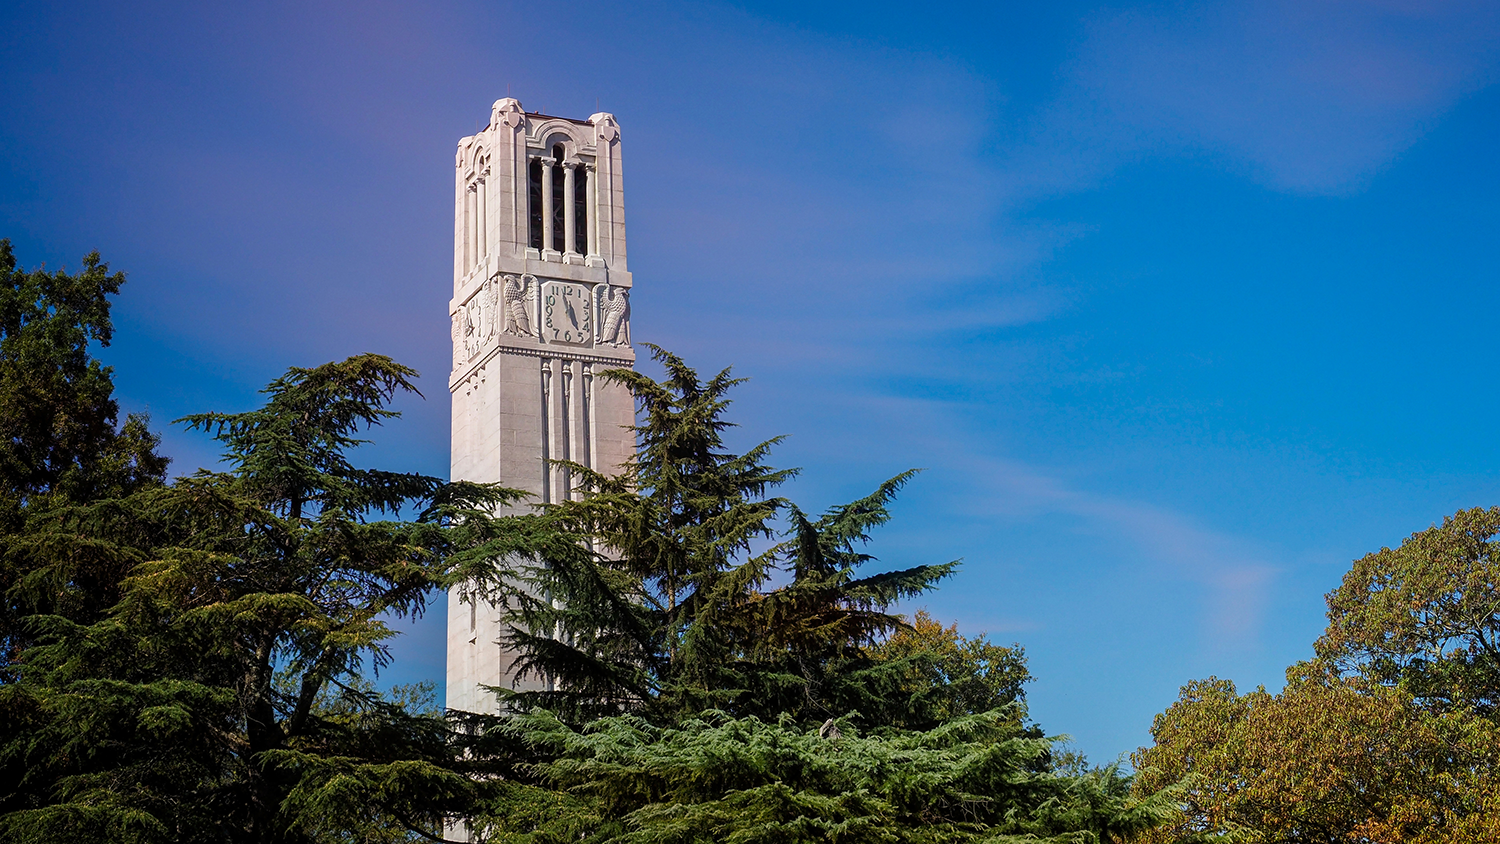 NC State's Memorial belltower on main campus.